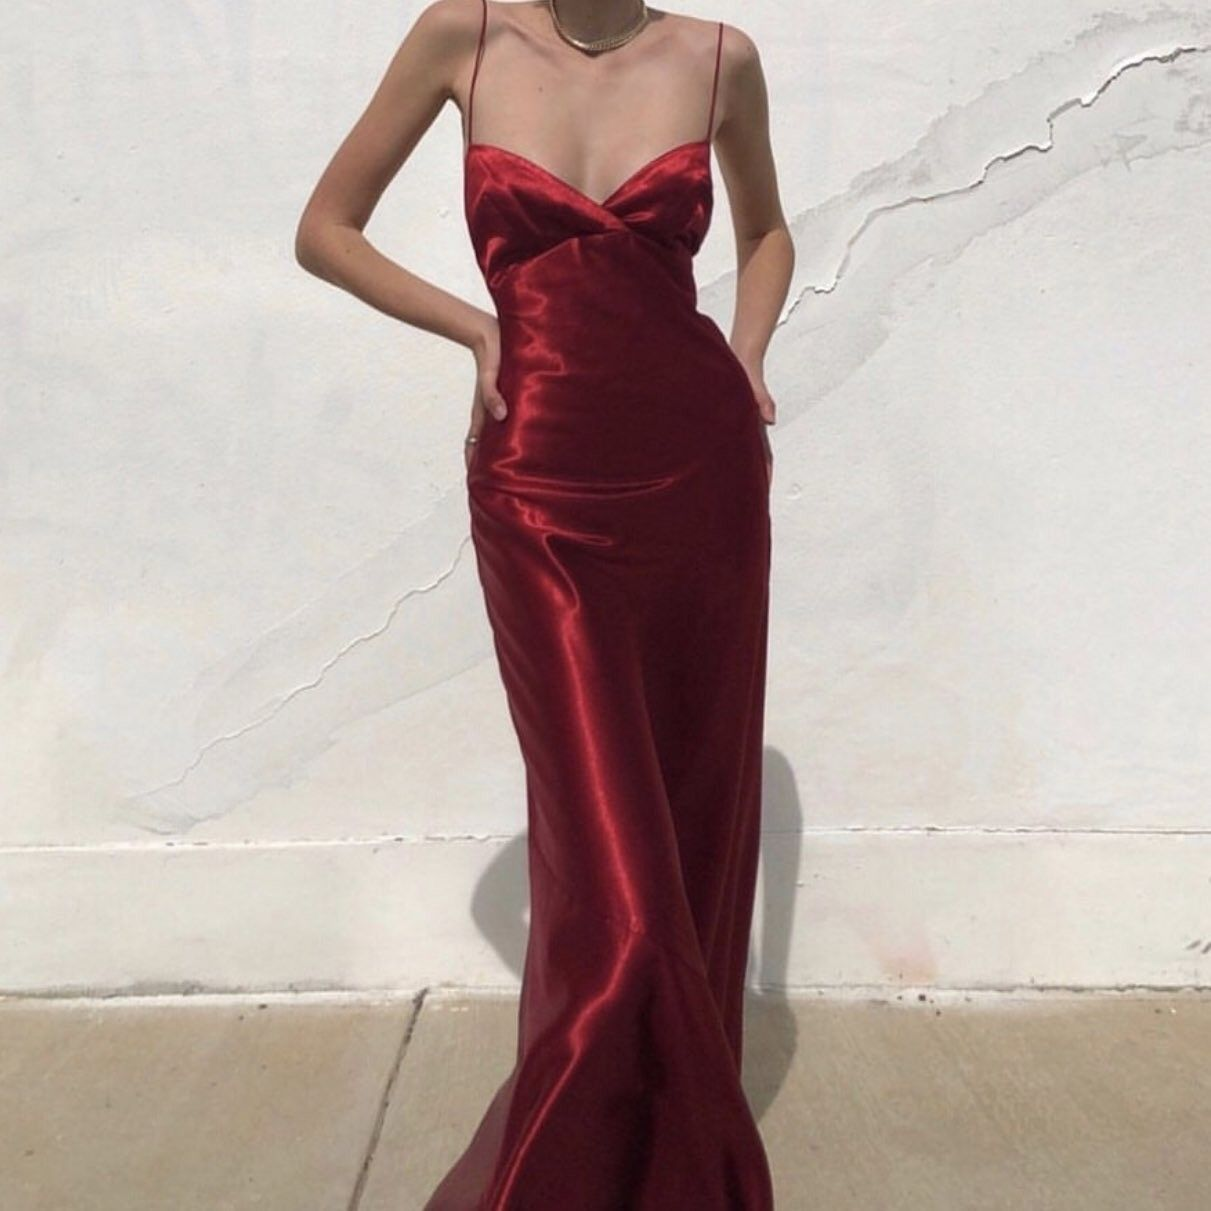 Red satin long dress  Red satin dress, Satin dresses, Satin gown